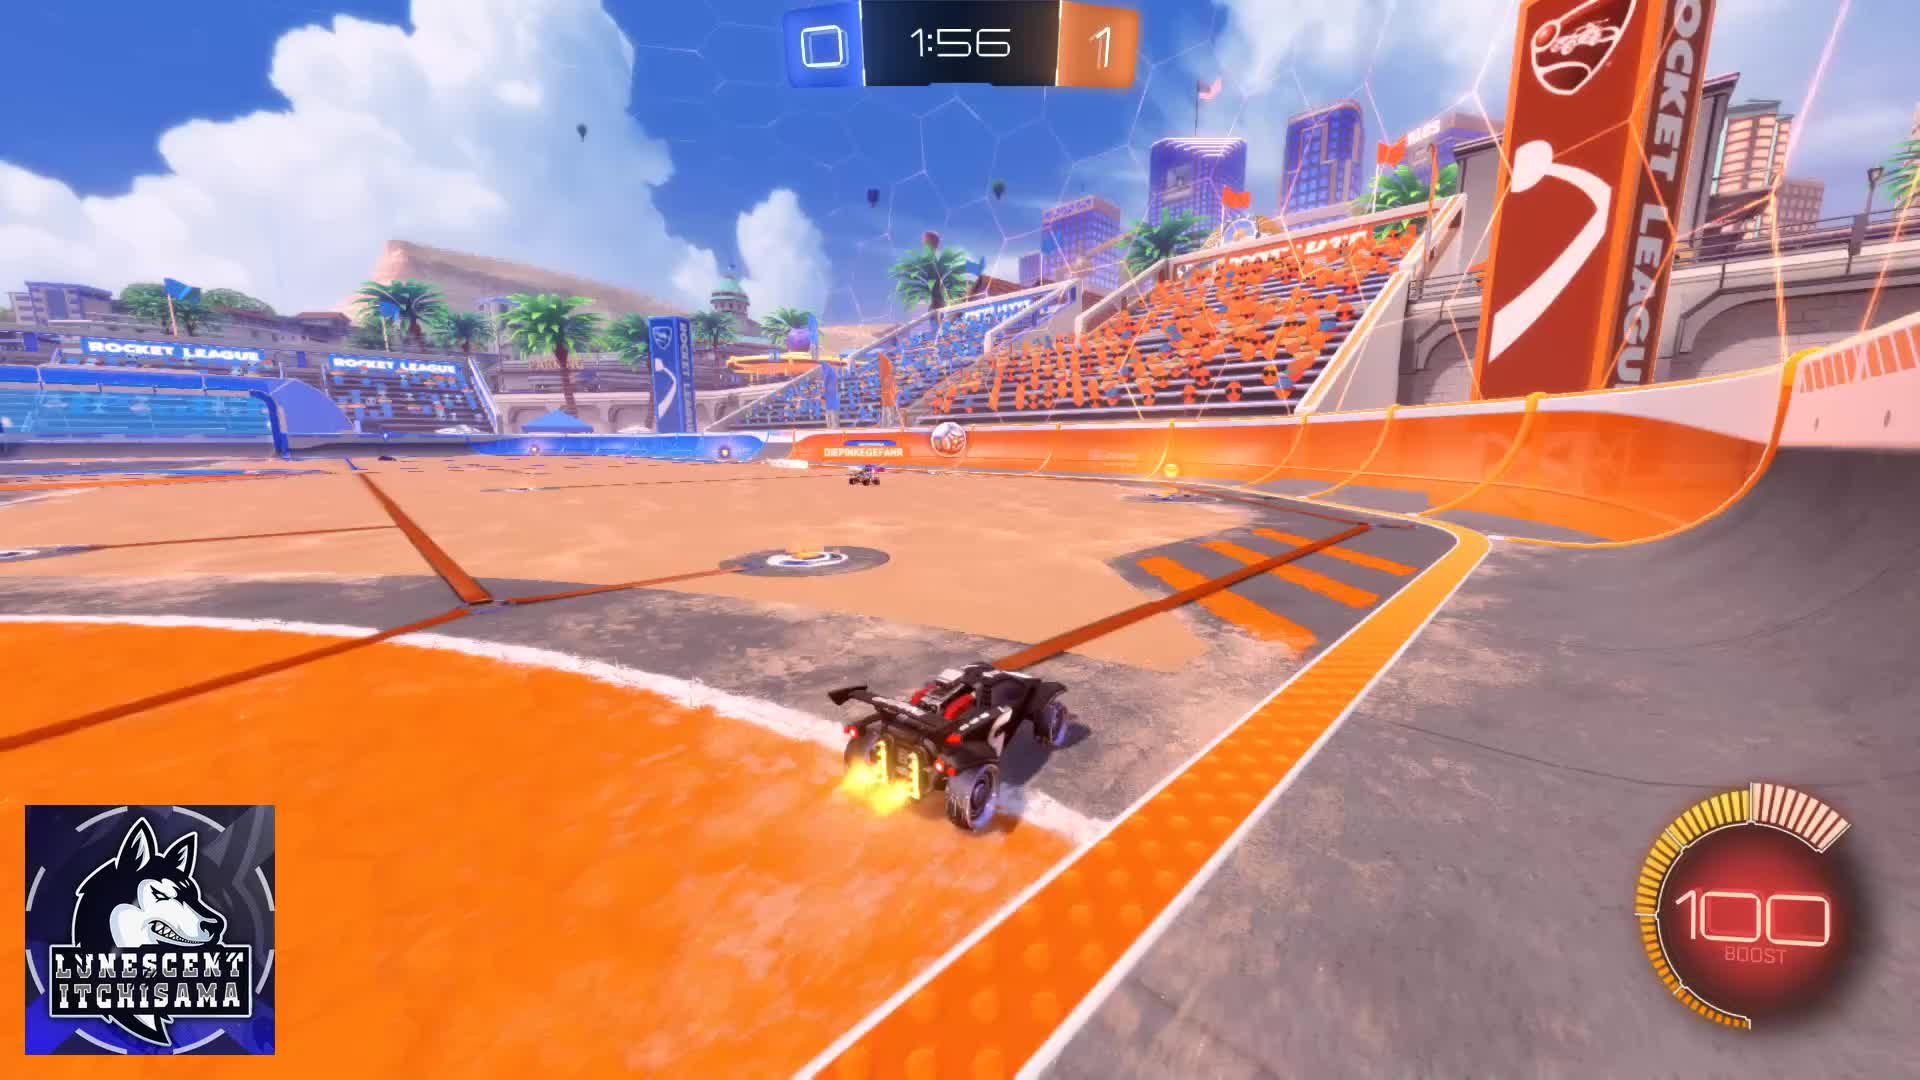 Gif Your Game, GifYourGame, Goal, Itchisama, Rocket League, RocketLeague, Goal 2: Itchisama GIFs